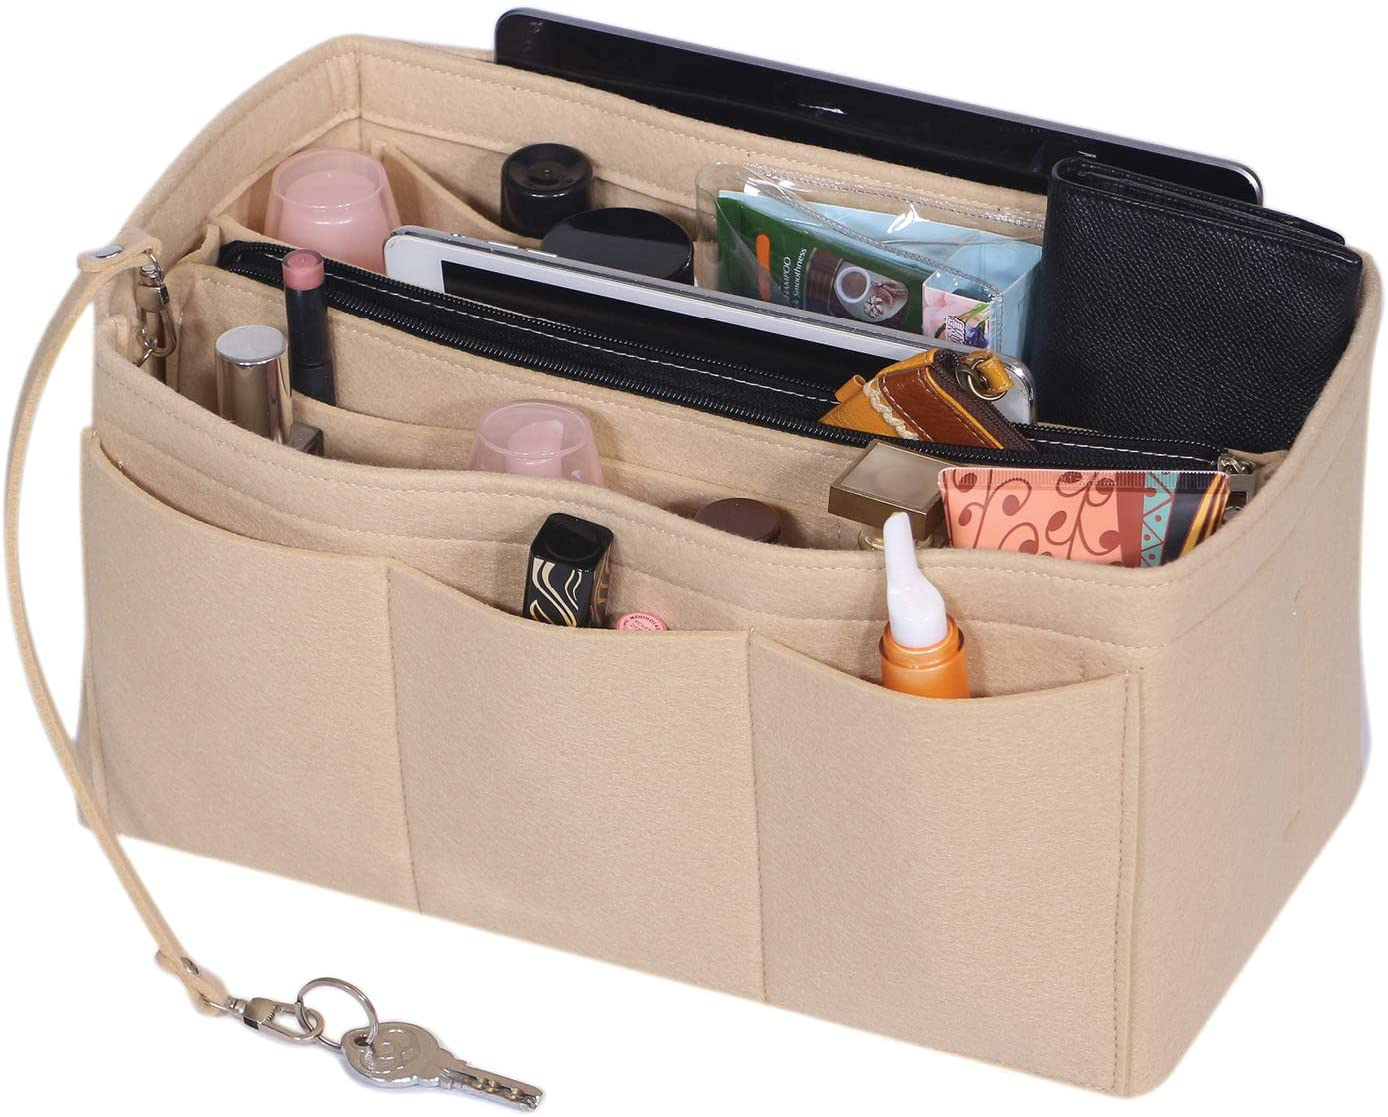 mes BAGS Bag insert organizer for Her zippered flap,EXPRESS shipping stabil structure and+ extra deep large pockets and